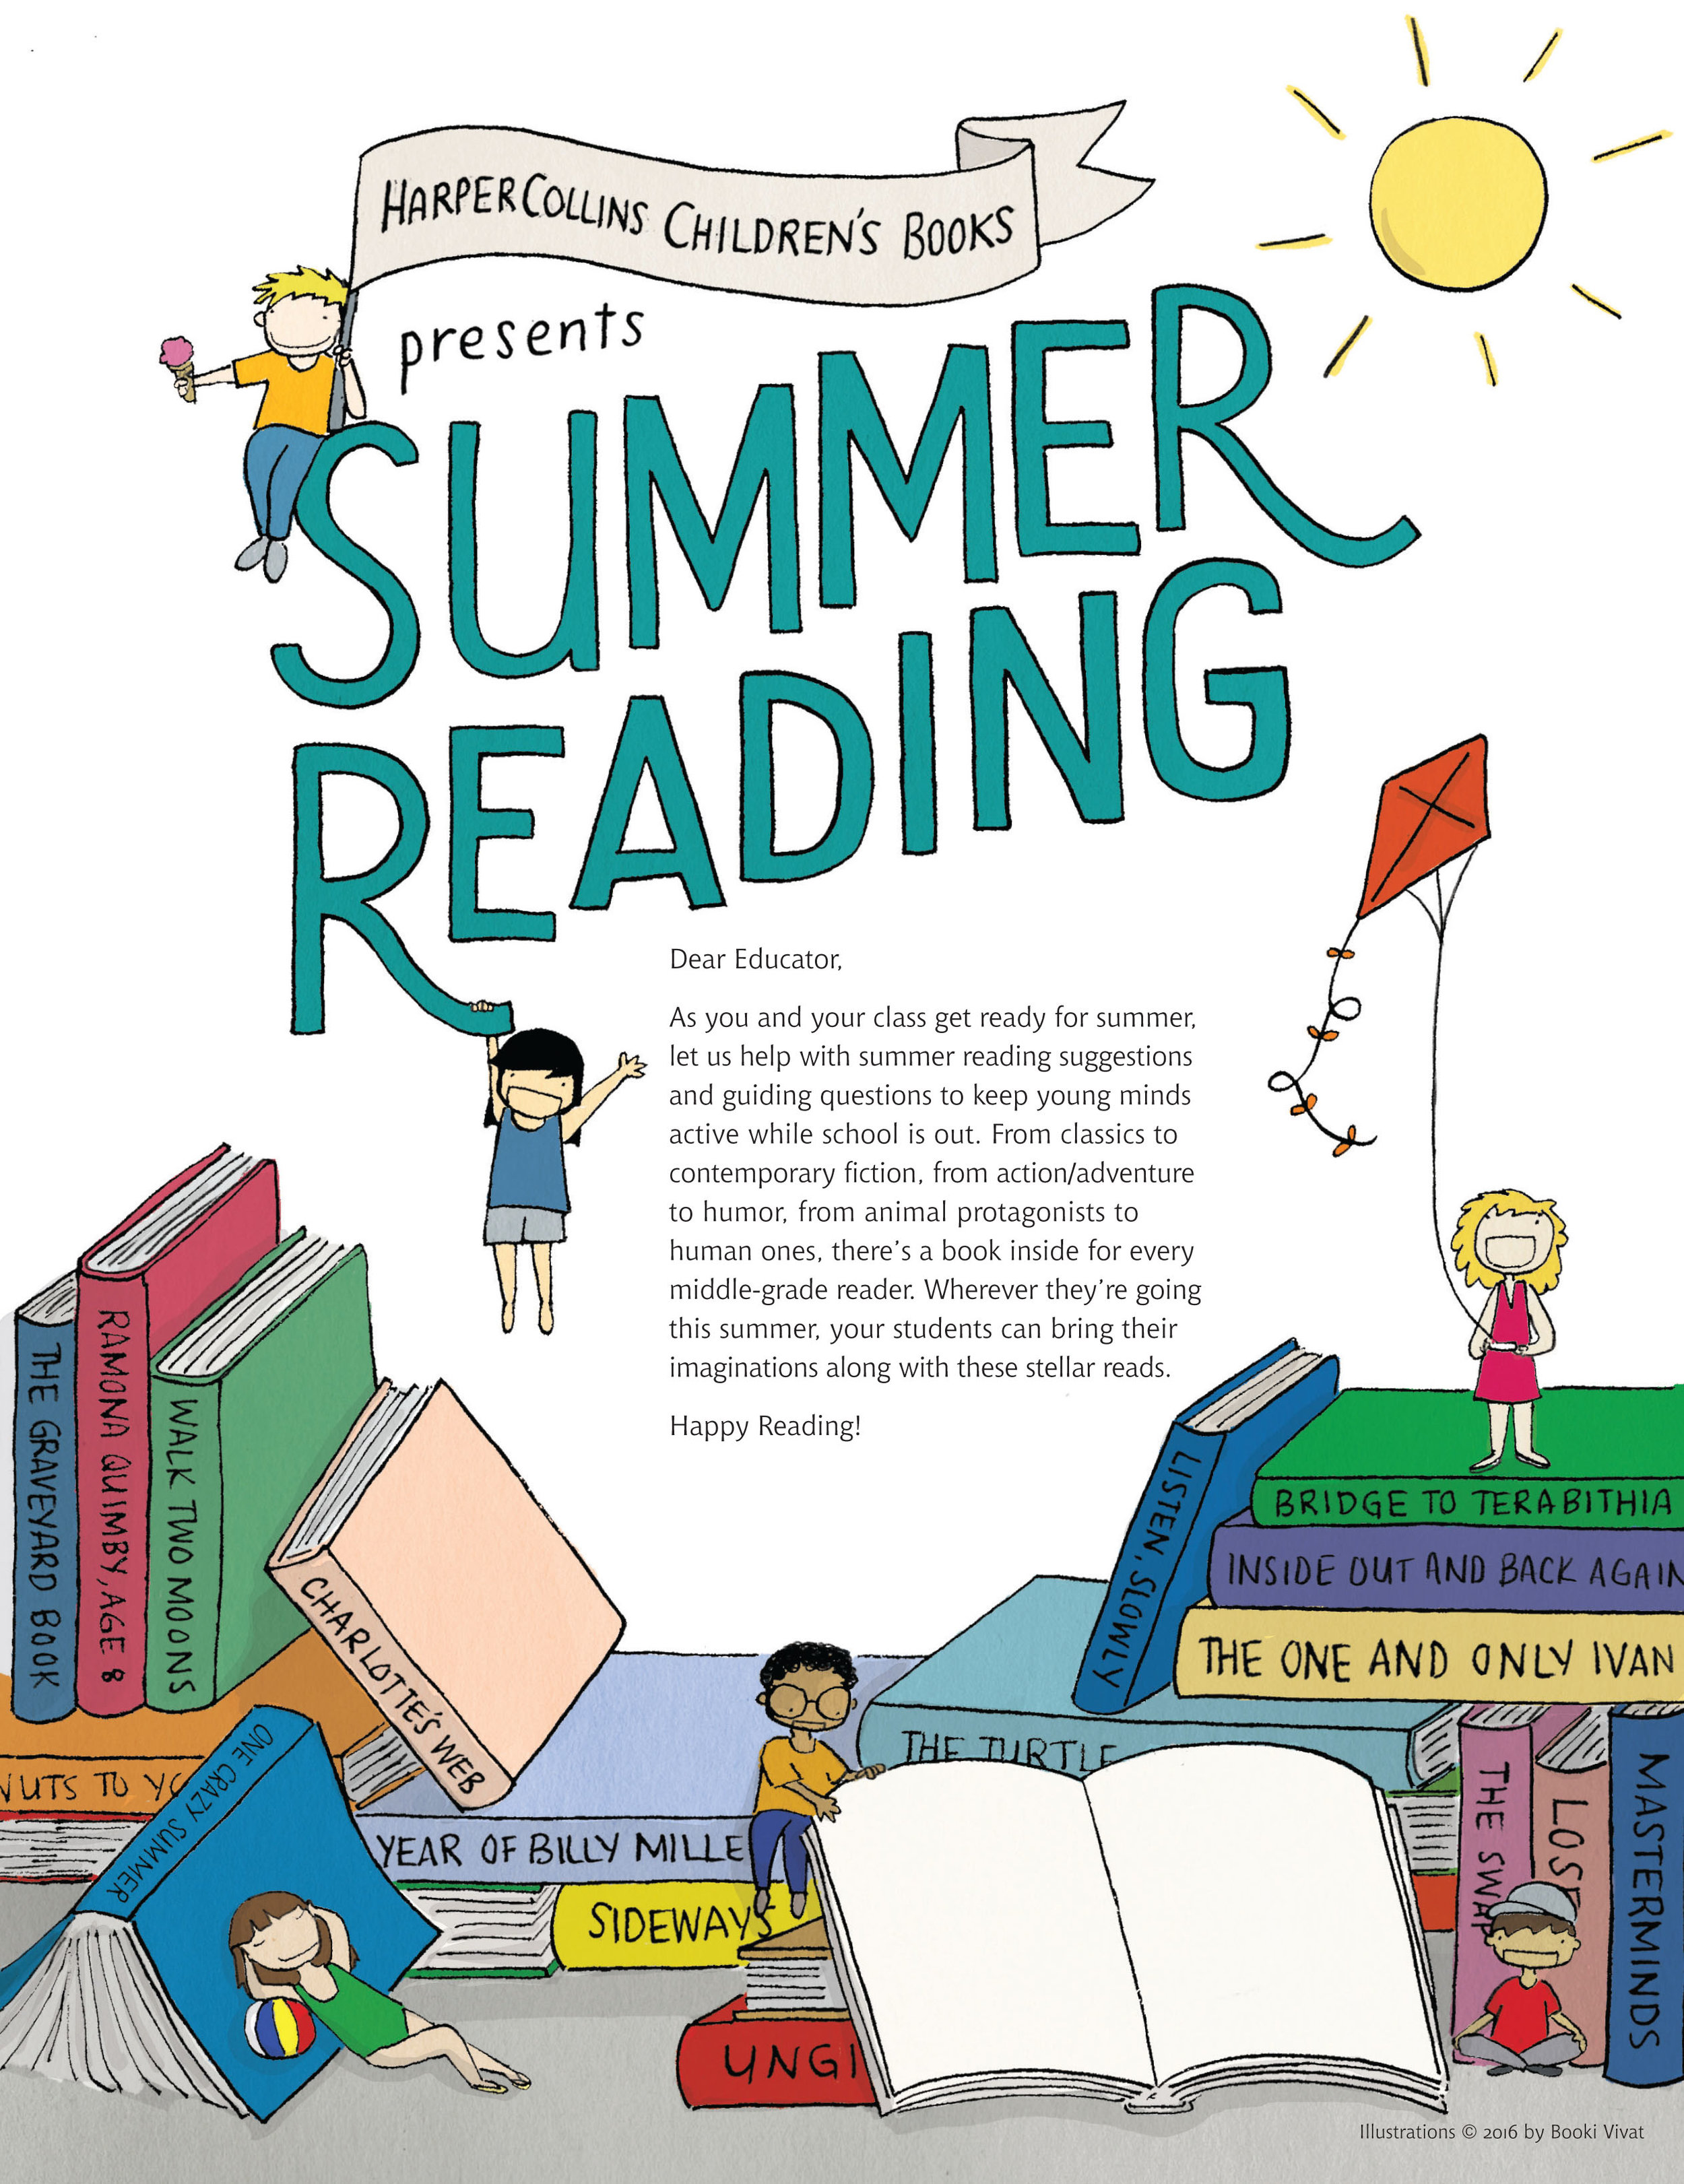 Summer-Reading-Guide-S16-HarperCollins-Childrens-Books copy-1.jpg